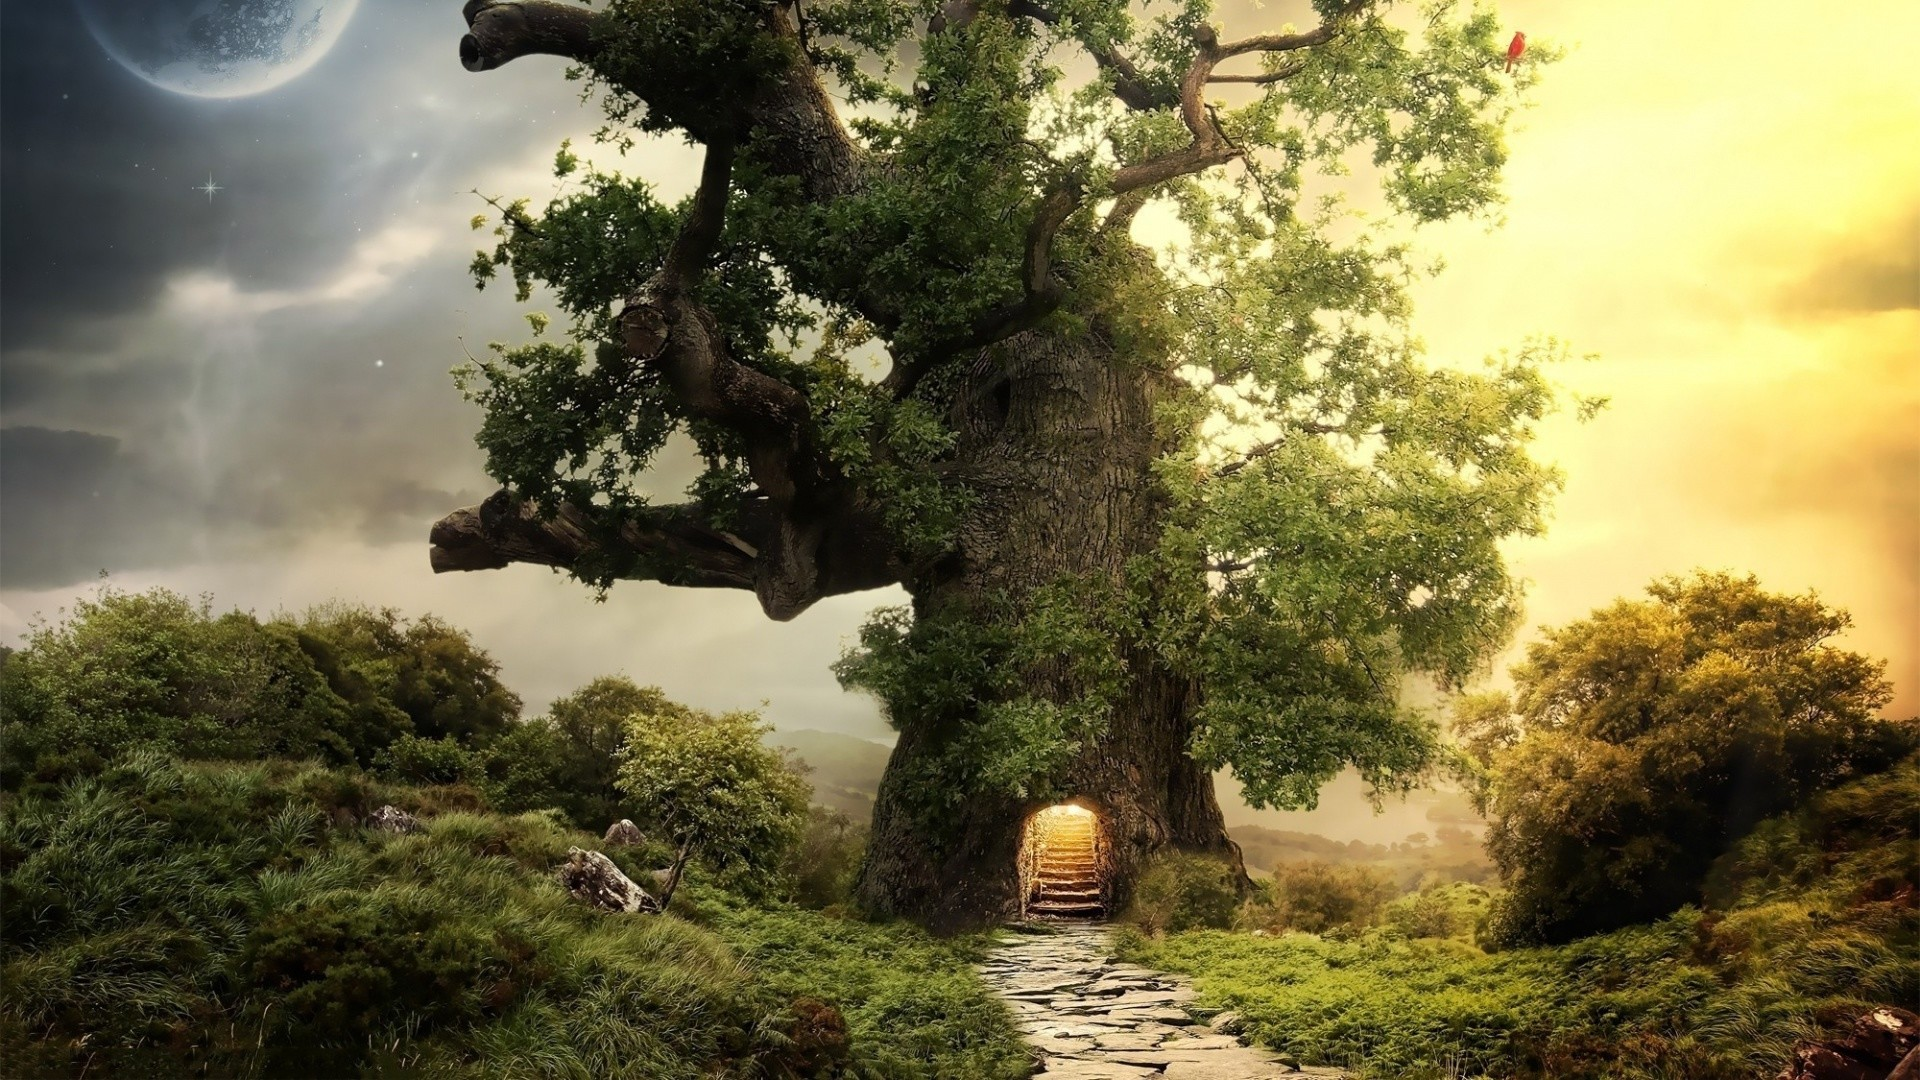 1920x1080 Free Online Fantasy Wallpapers | Full HD Desktop fantasy Description The  Wallpaper above is Fantasy house tree